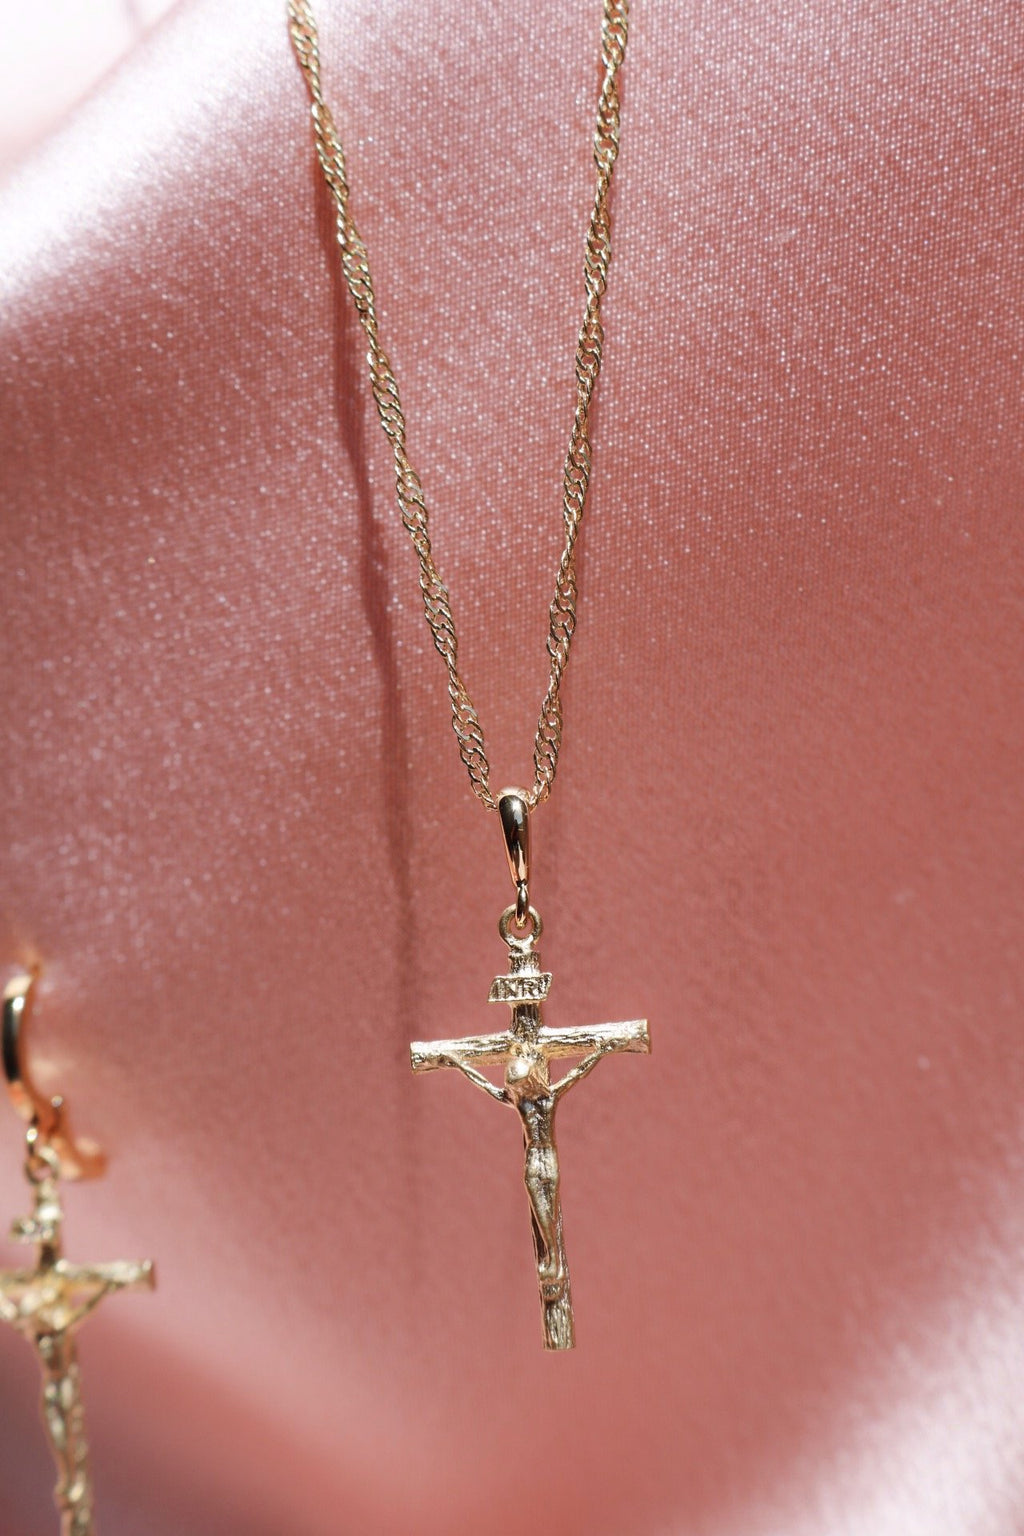 Cross Your Heart Necklace